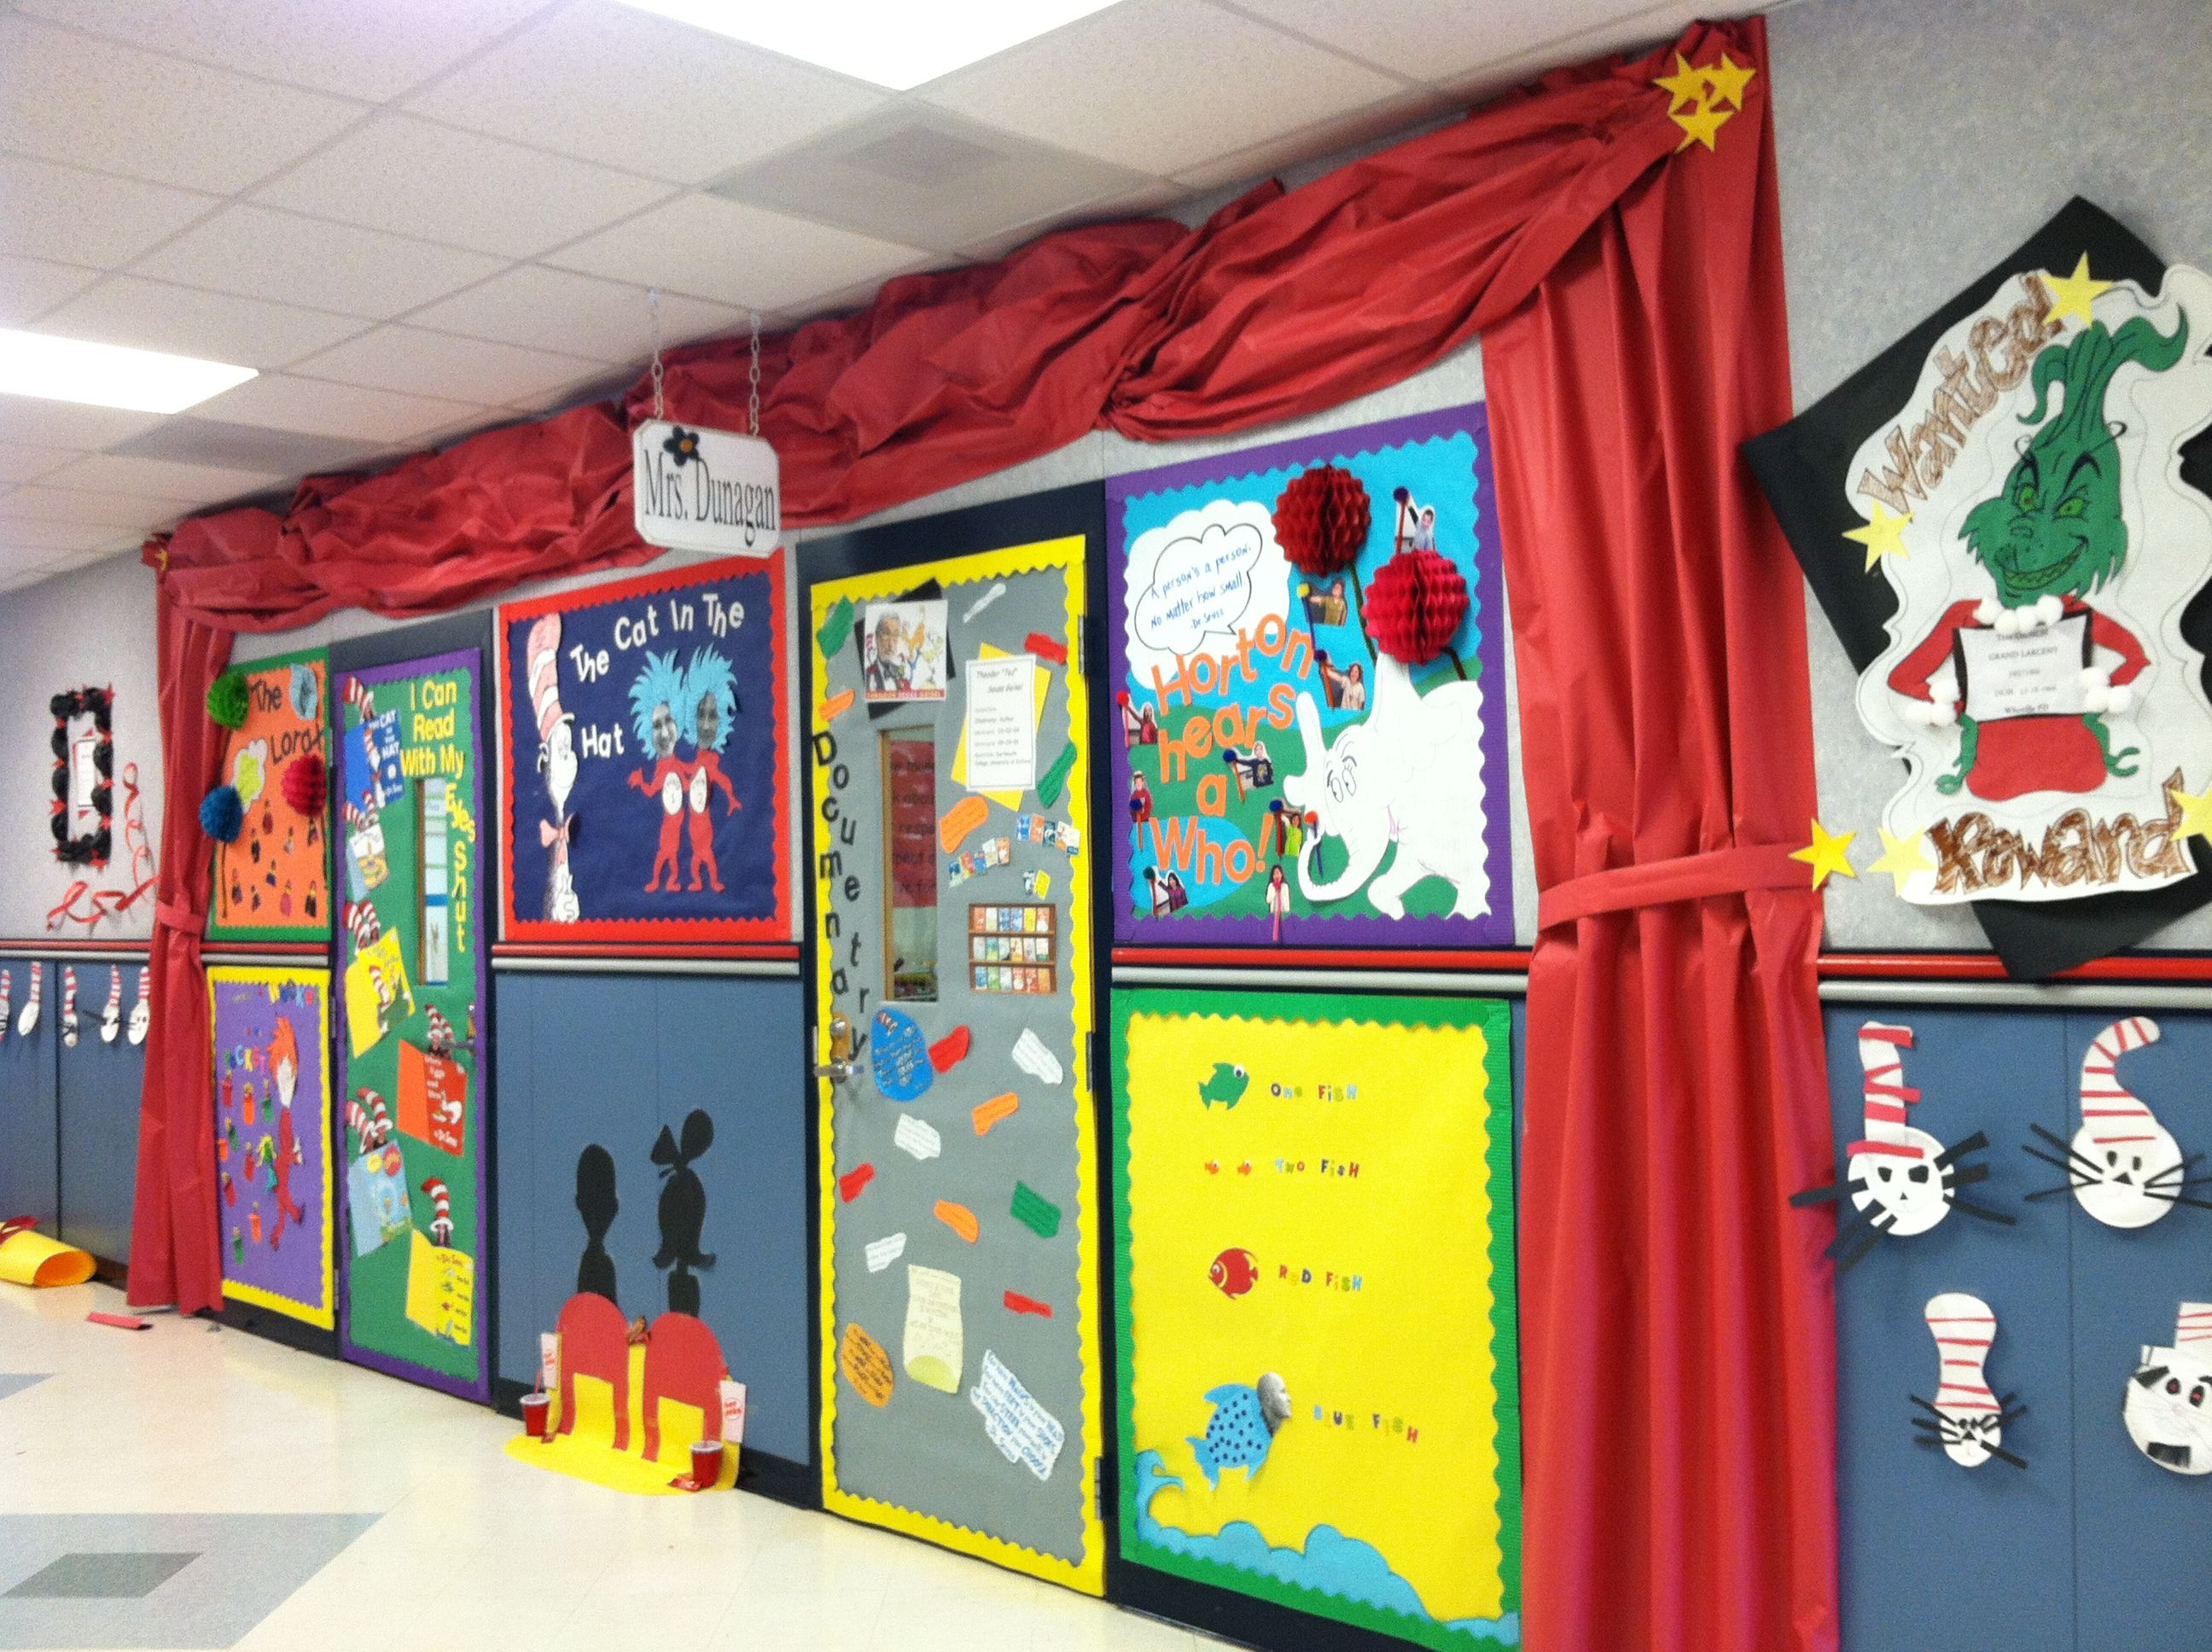 Dr Seuss Door Decorating Contest | SEUSS QUOTES ...